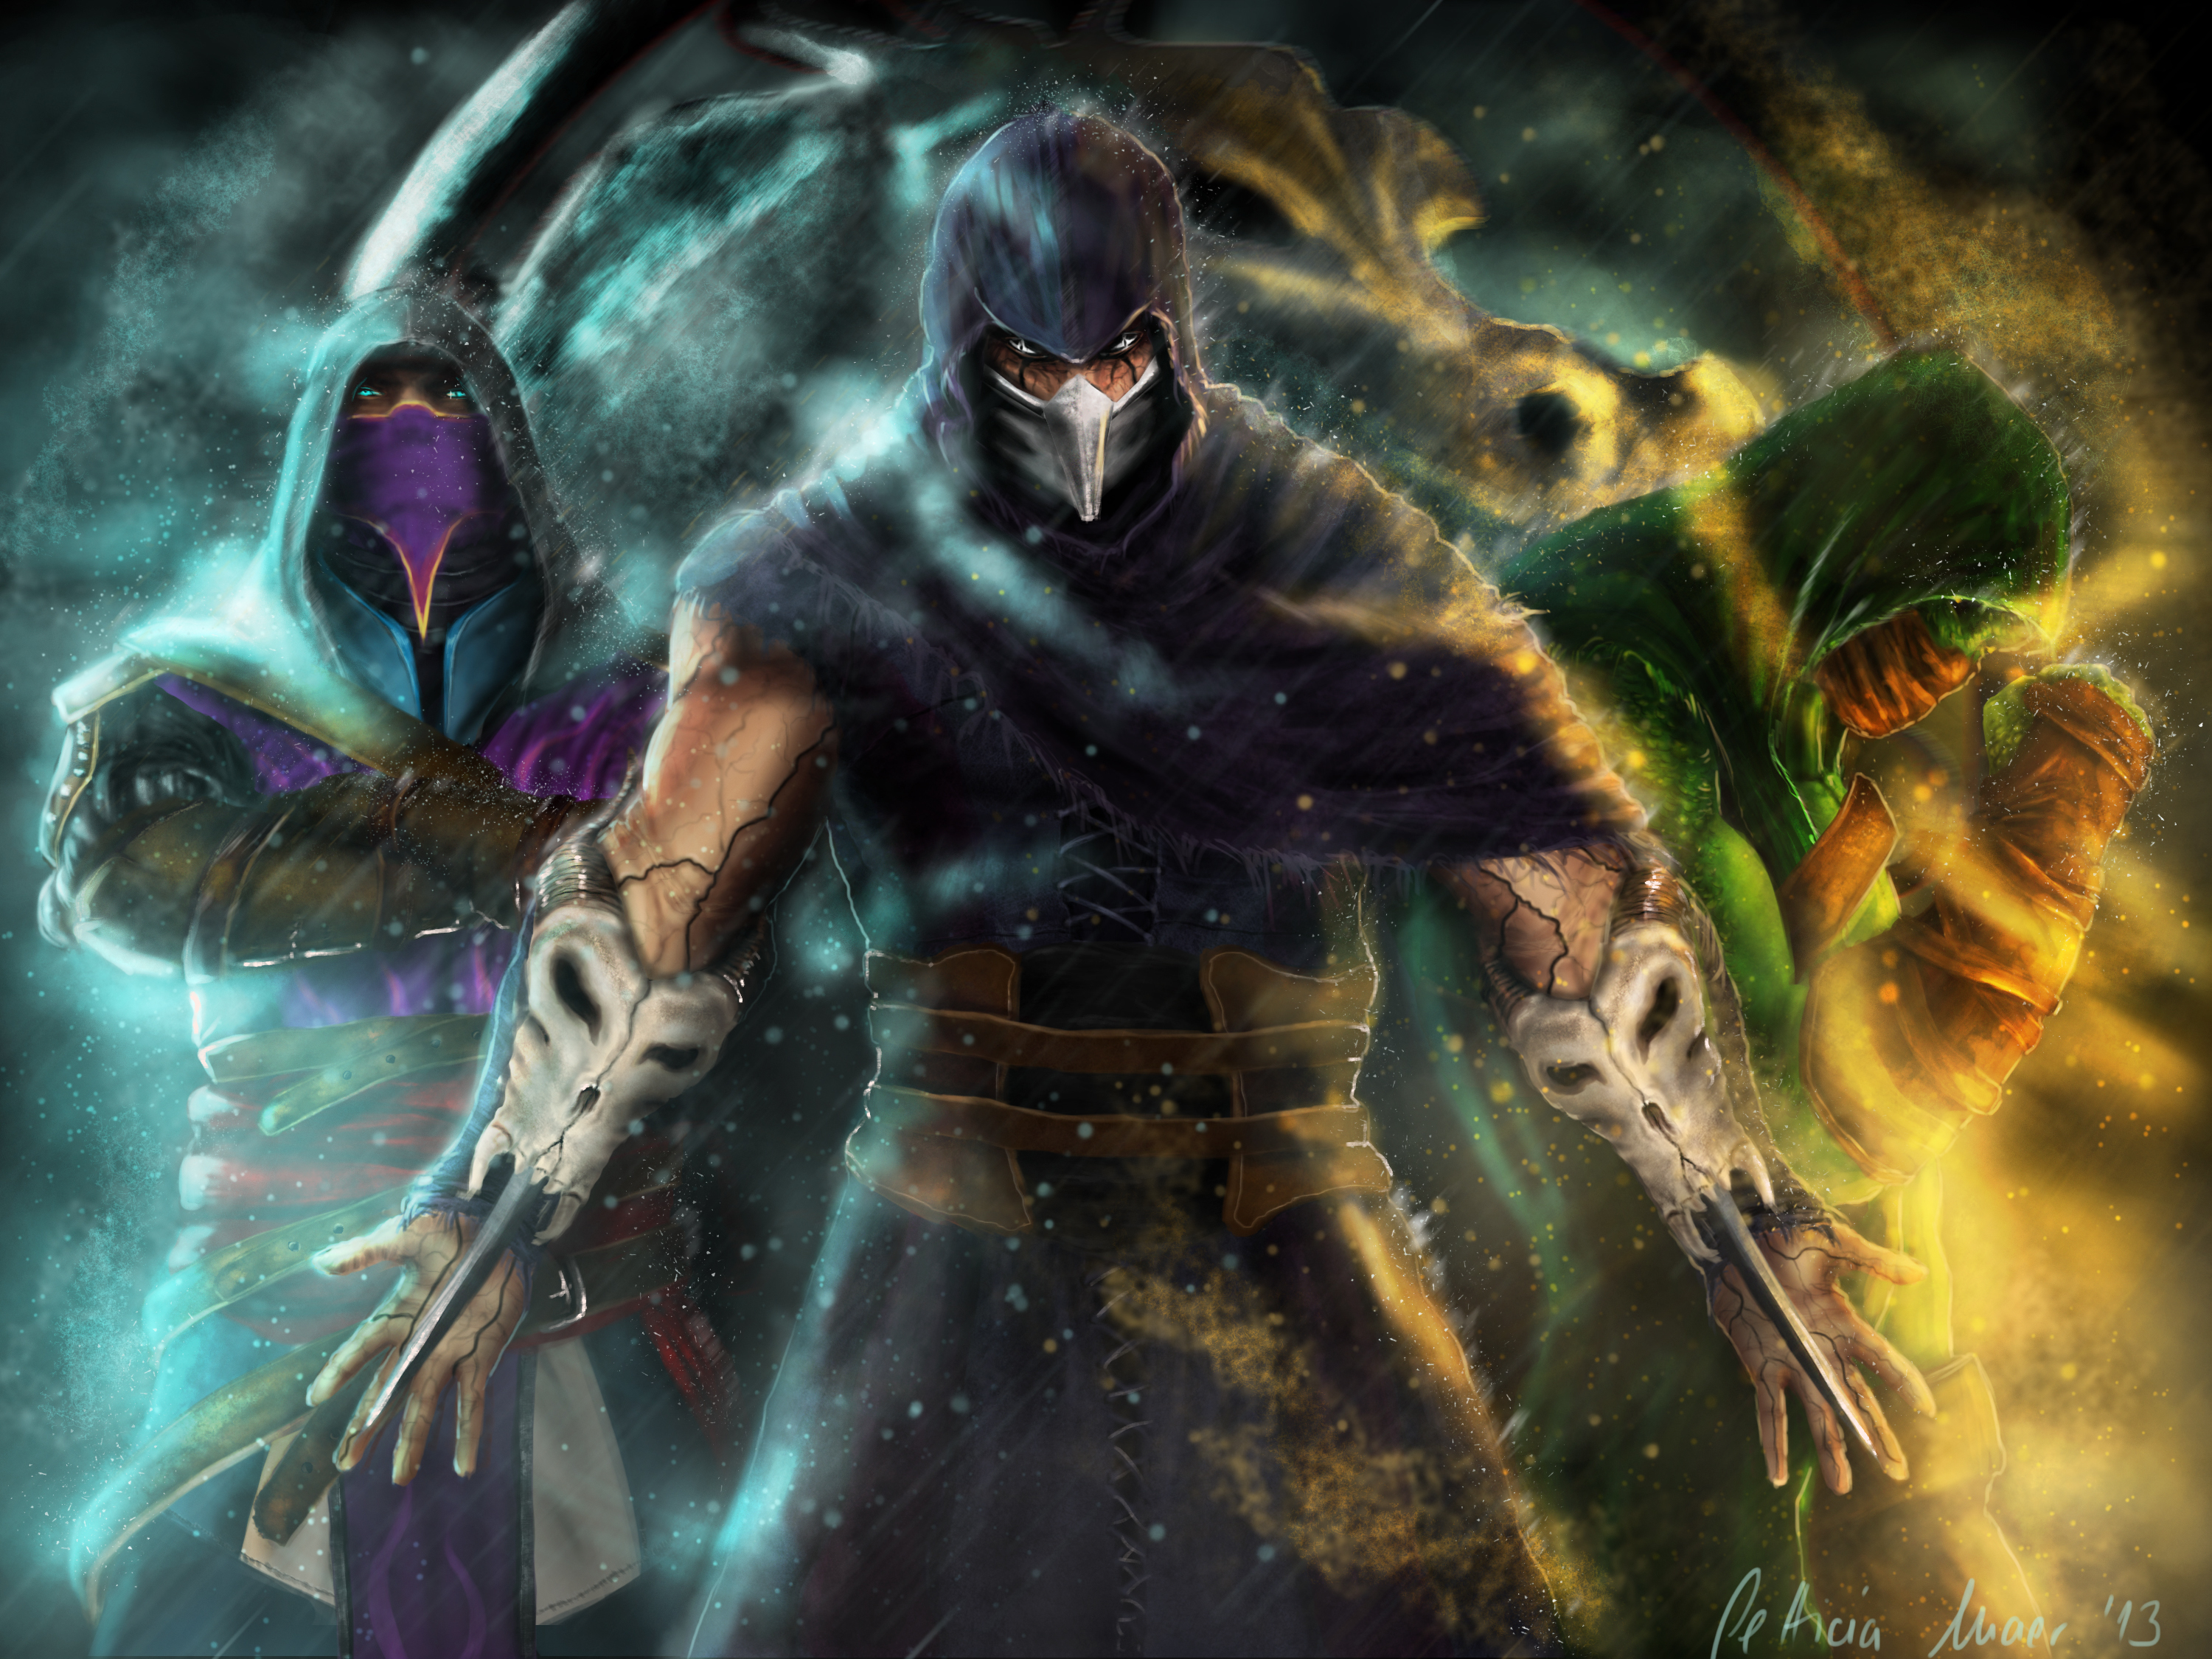 rain mortal kombat wallpaper - wallpapersafari